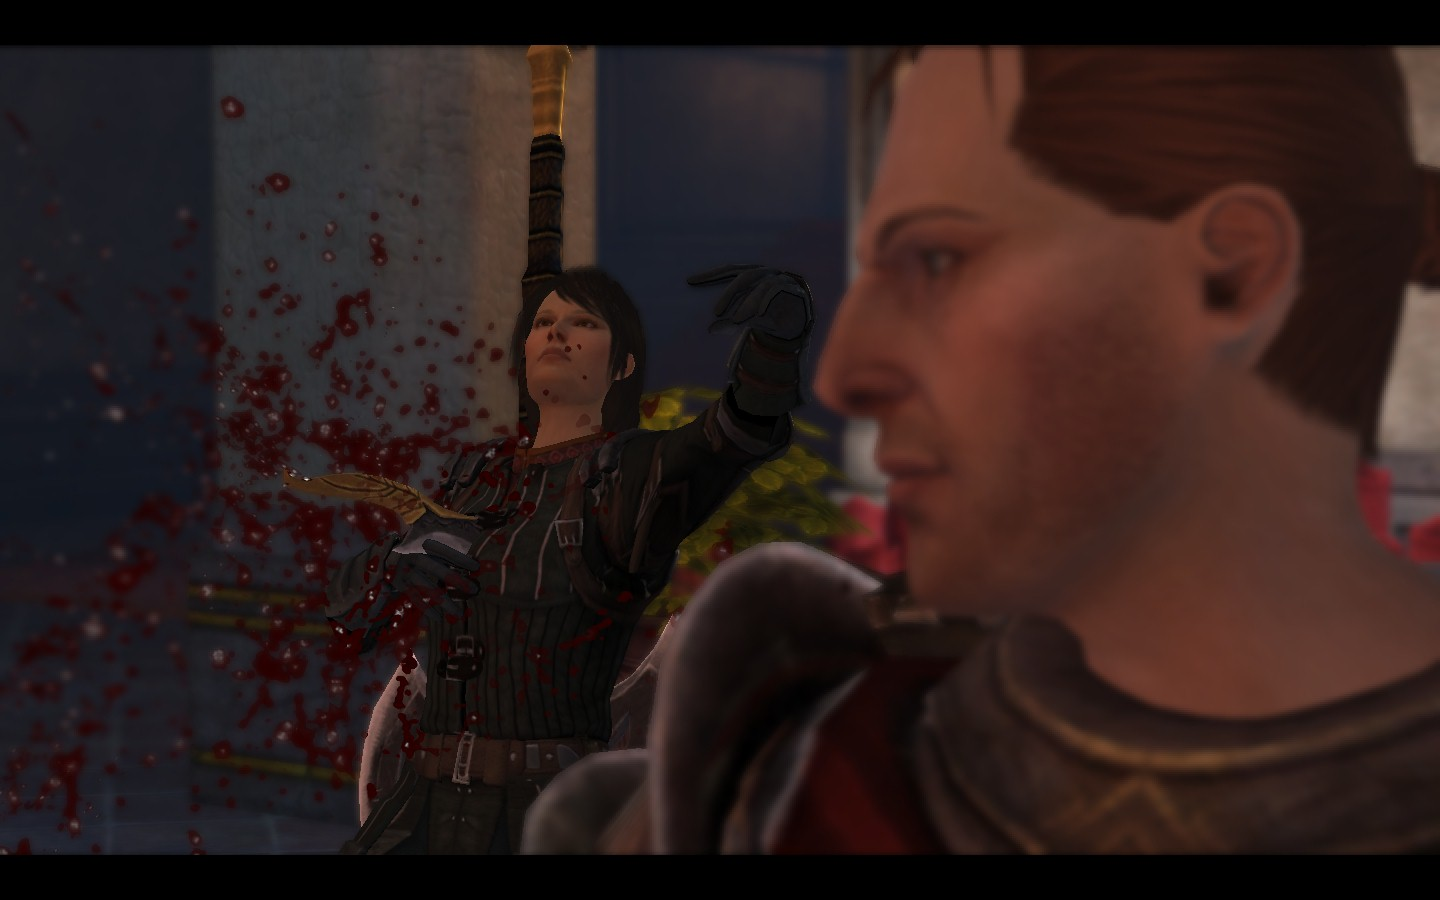 Dragon-Age2-Dagger-in-chest.jpg